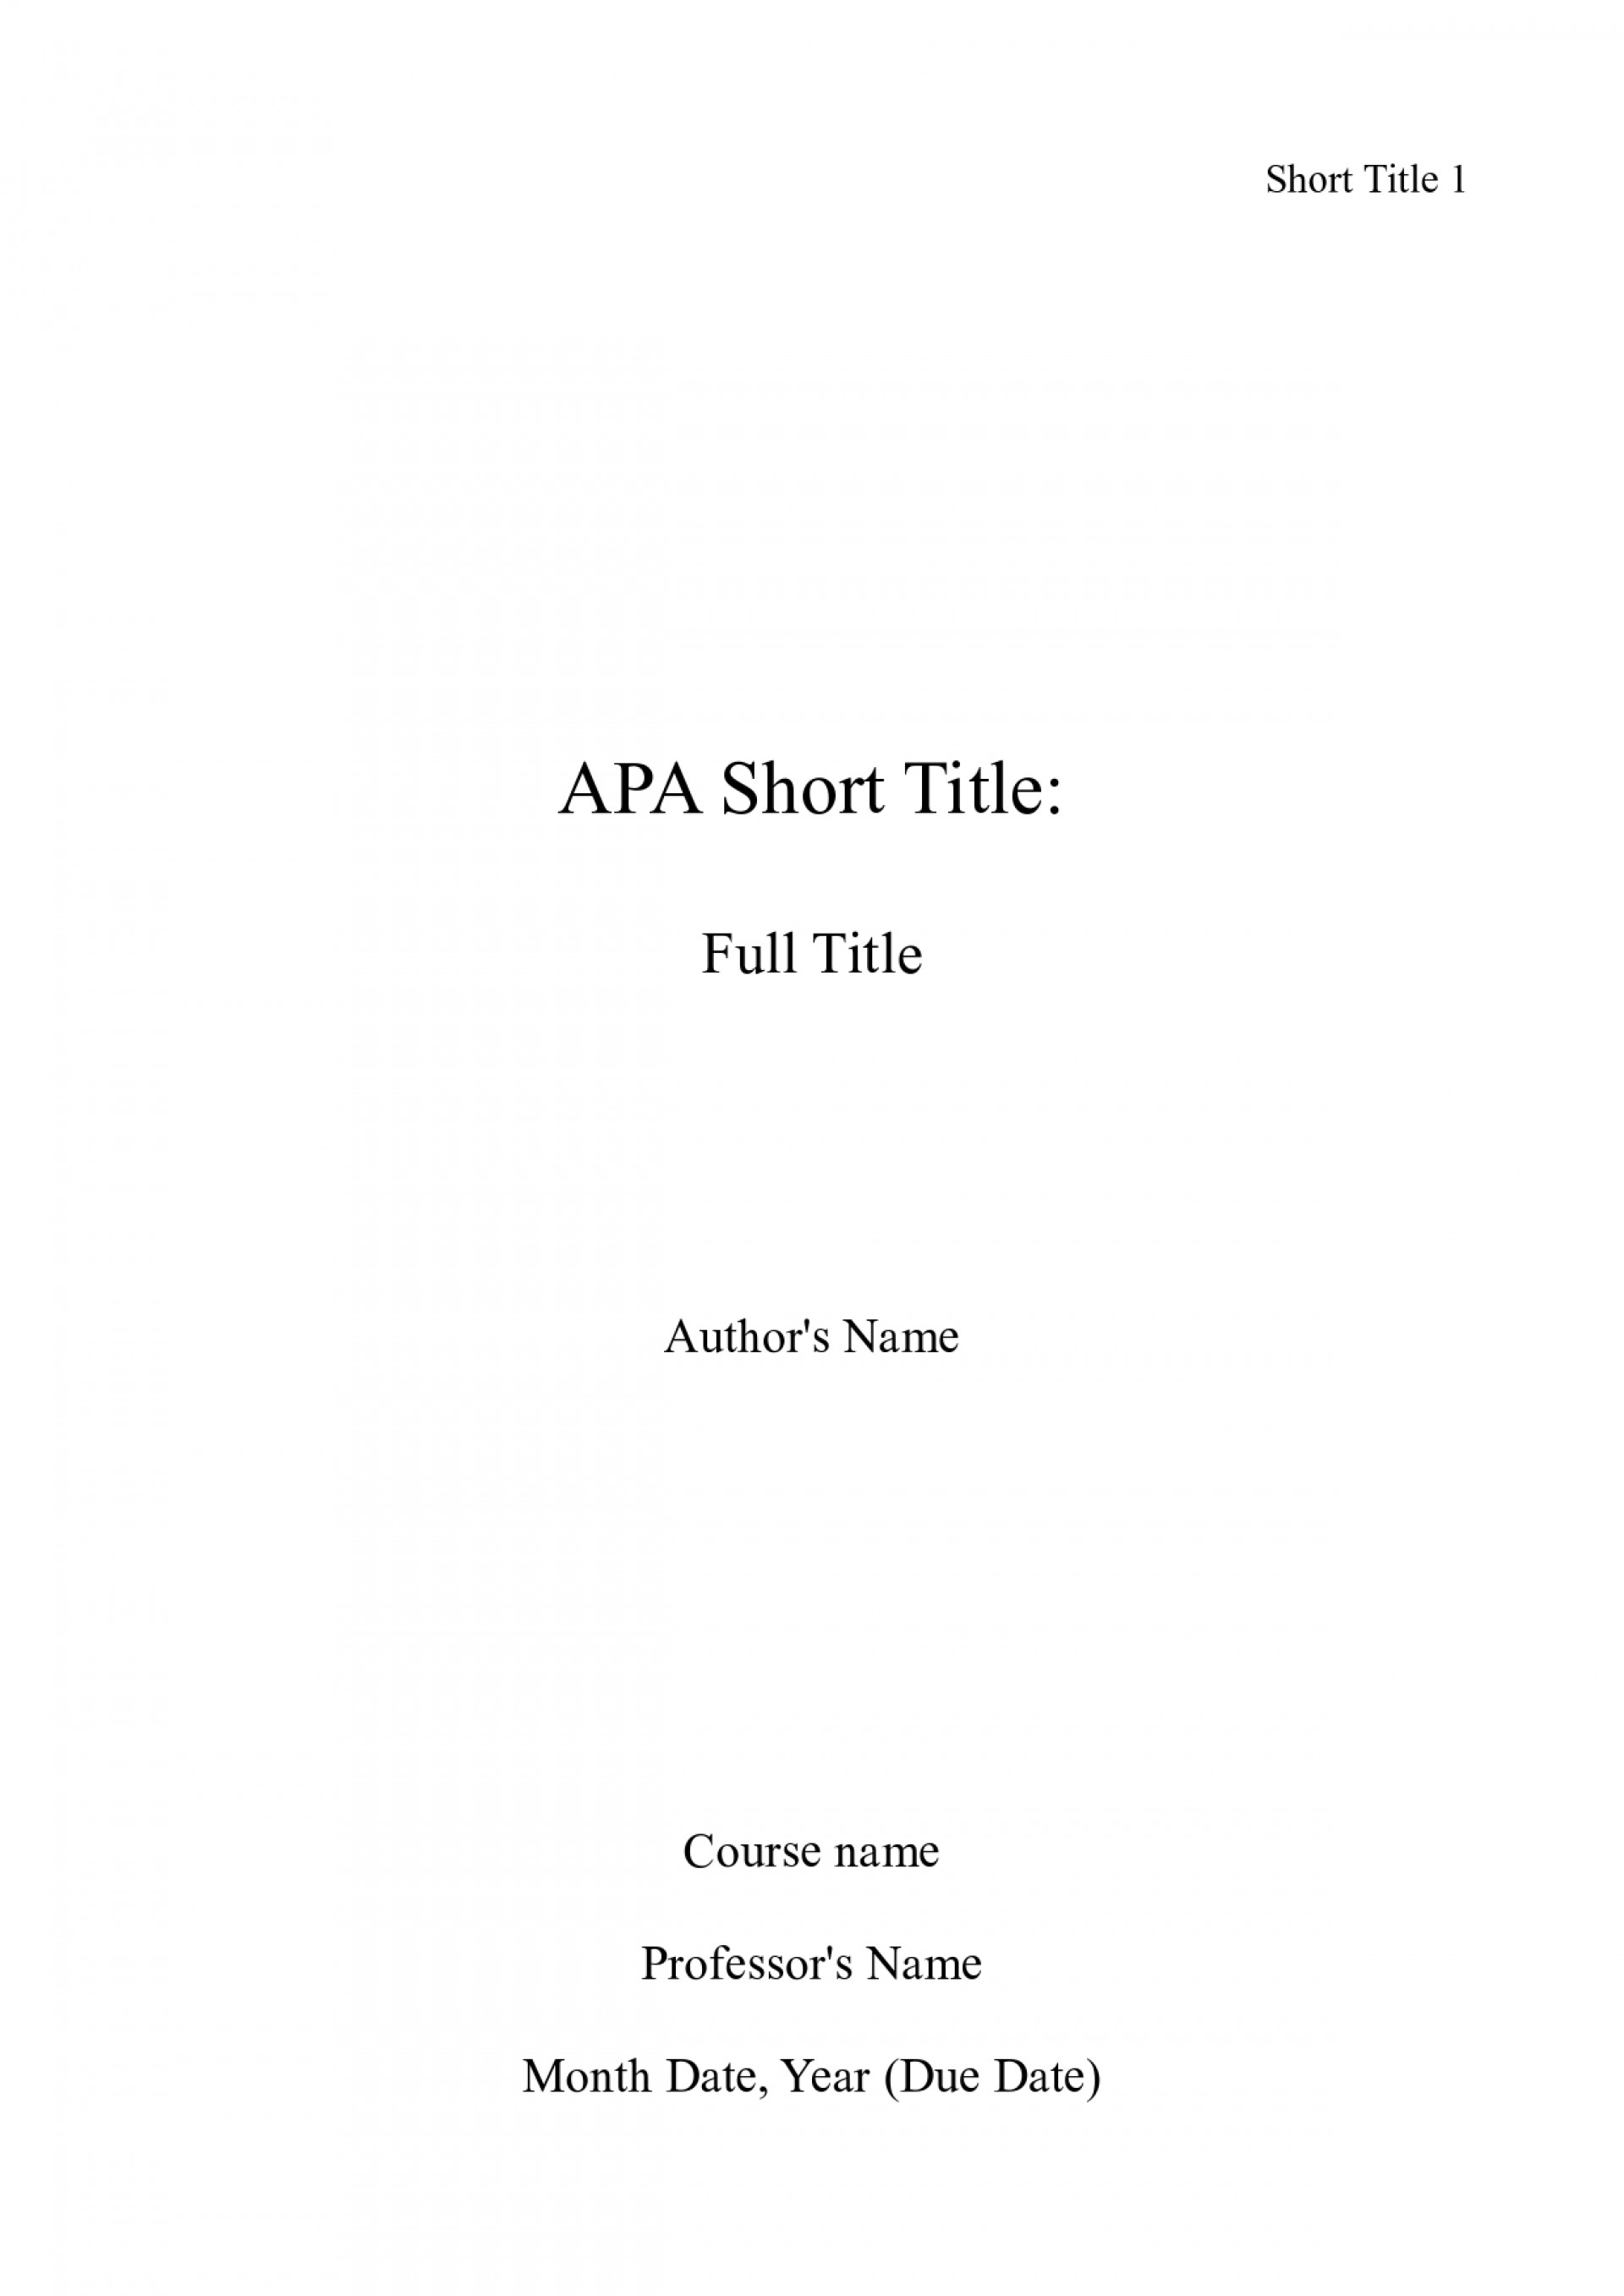 006 Apa Title Page Sample Research Paper Covermat Astounding Cover Format For Example Front Formatting 1920